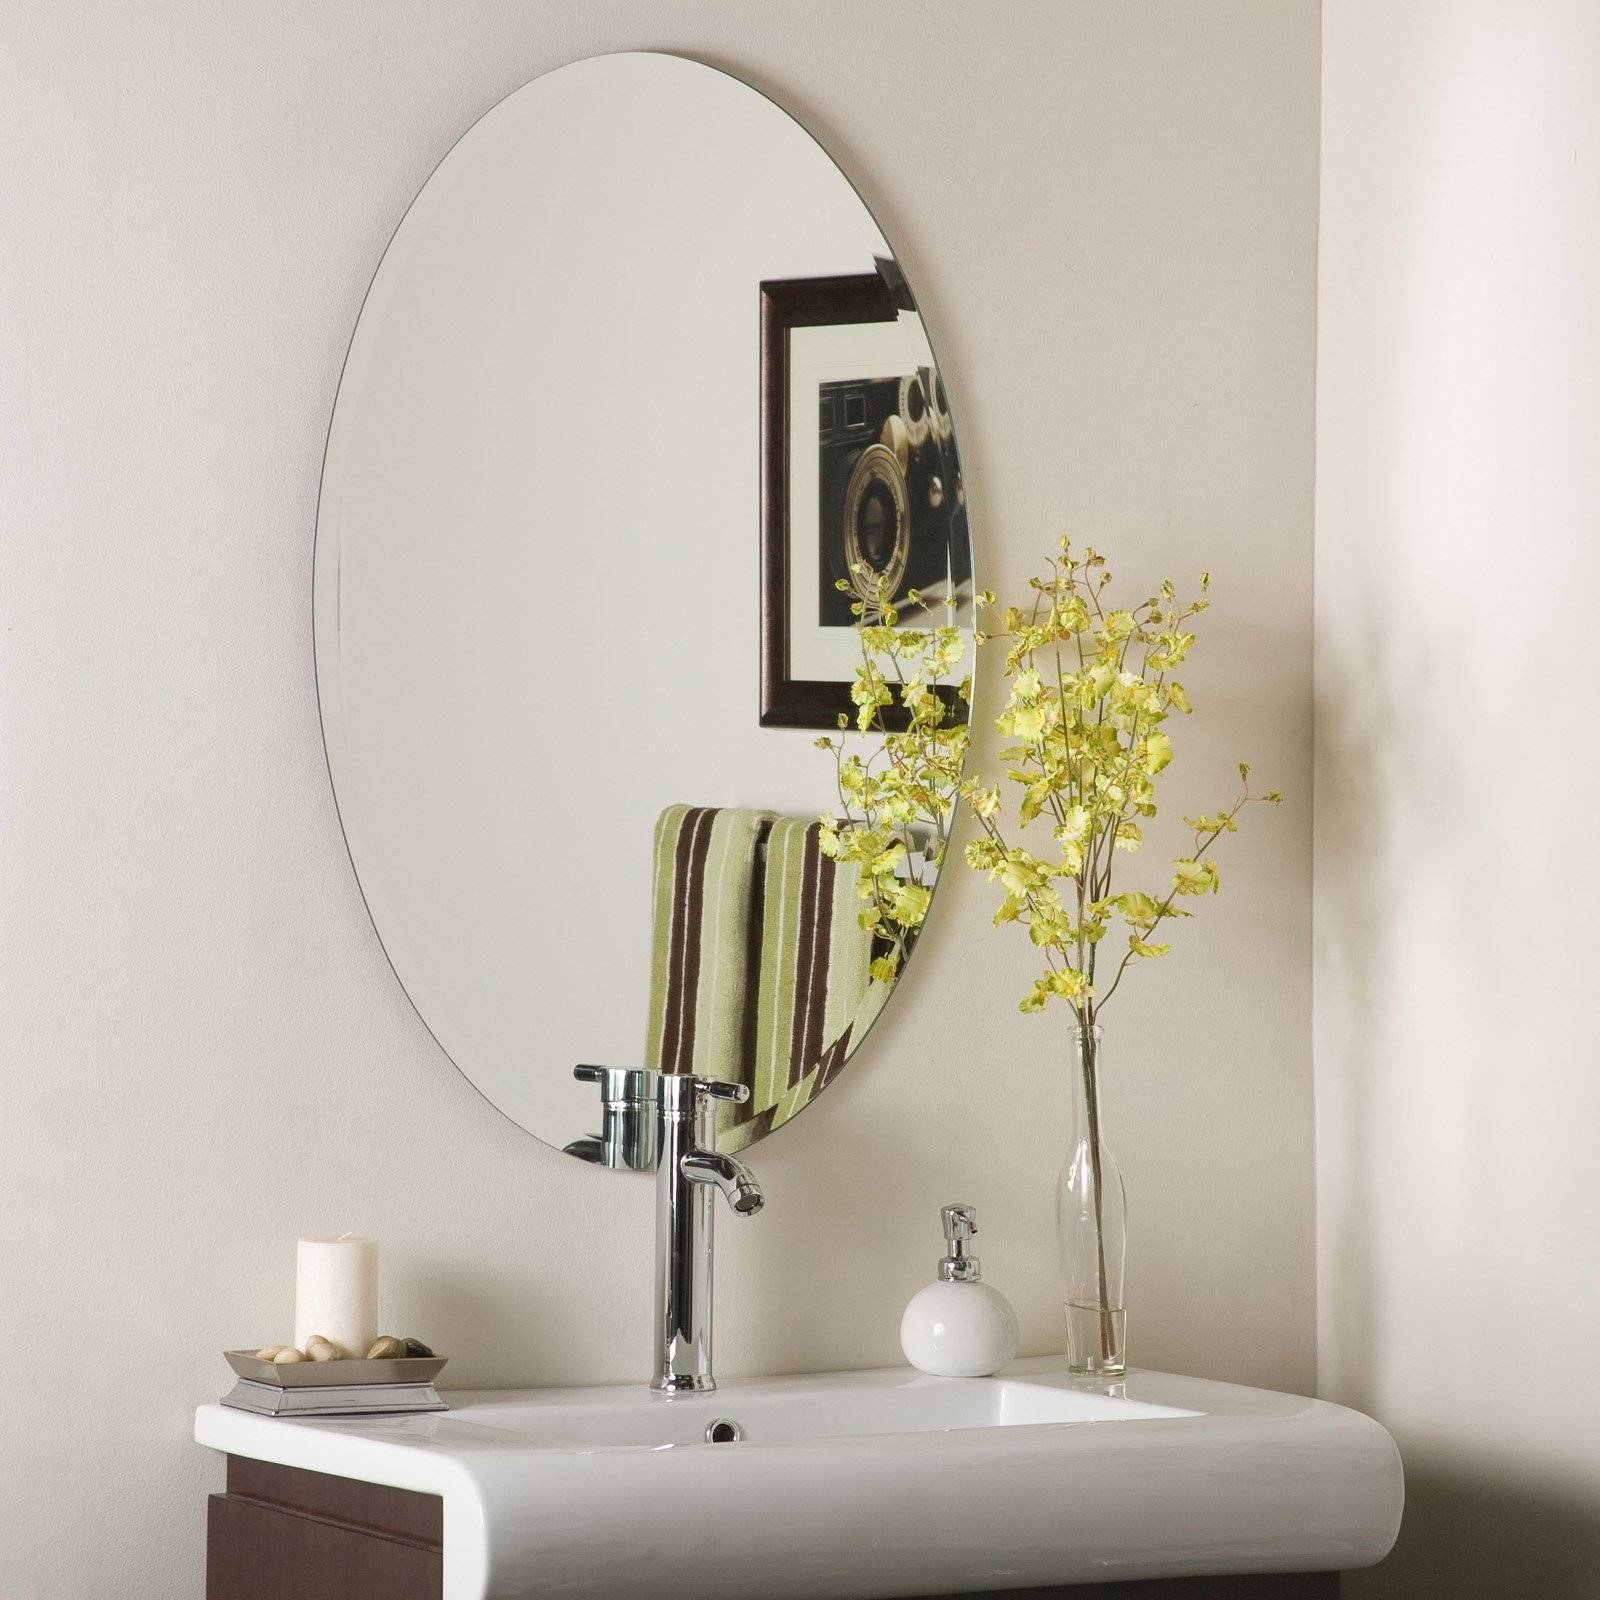 Uttermost Frameless Oval Beveled Vanity Mirror | Hayneedle intended for Beveled Edge Oval Mirrors (Image 24 of 25)